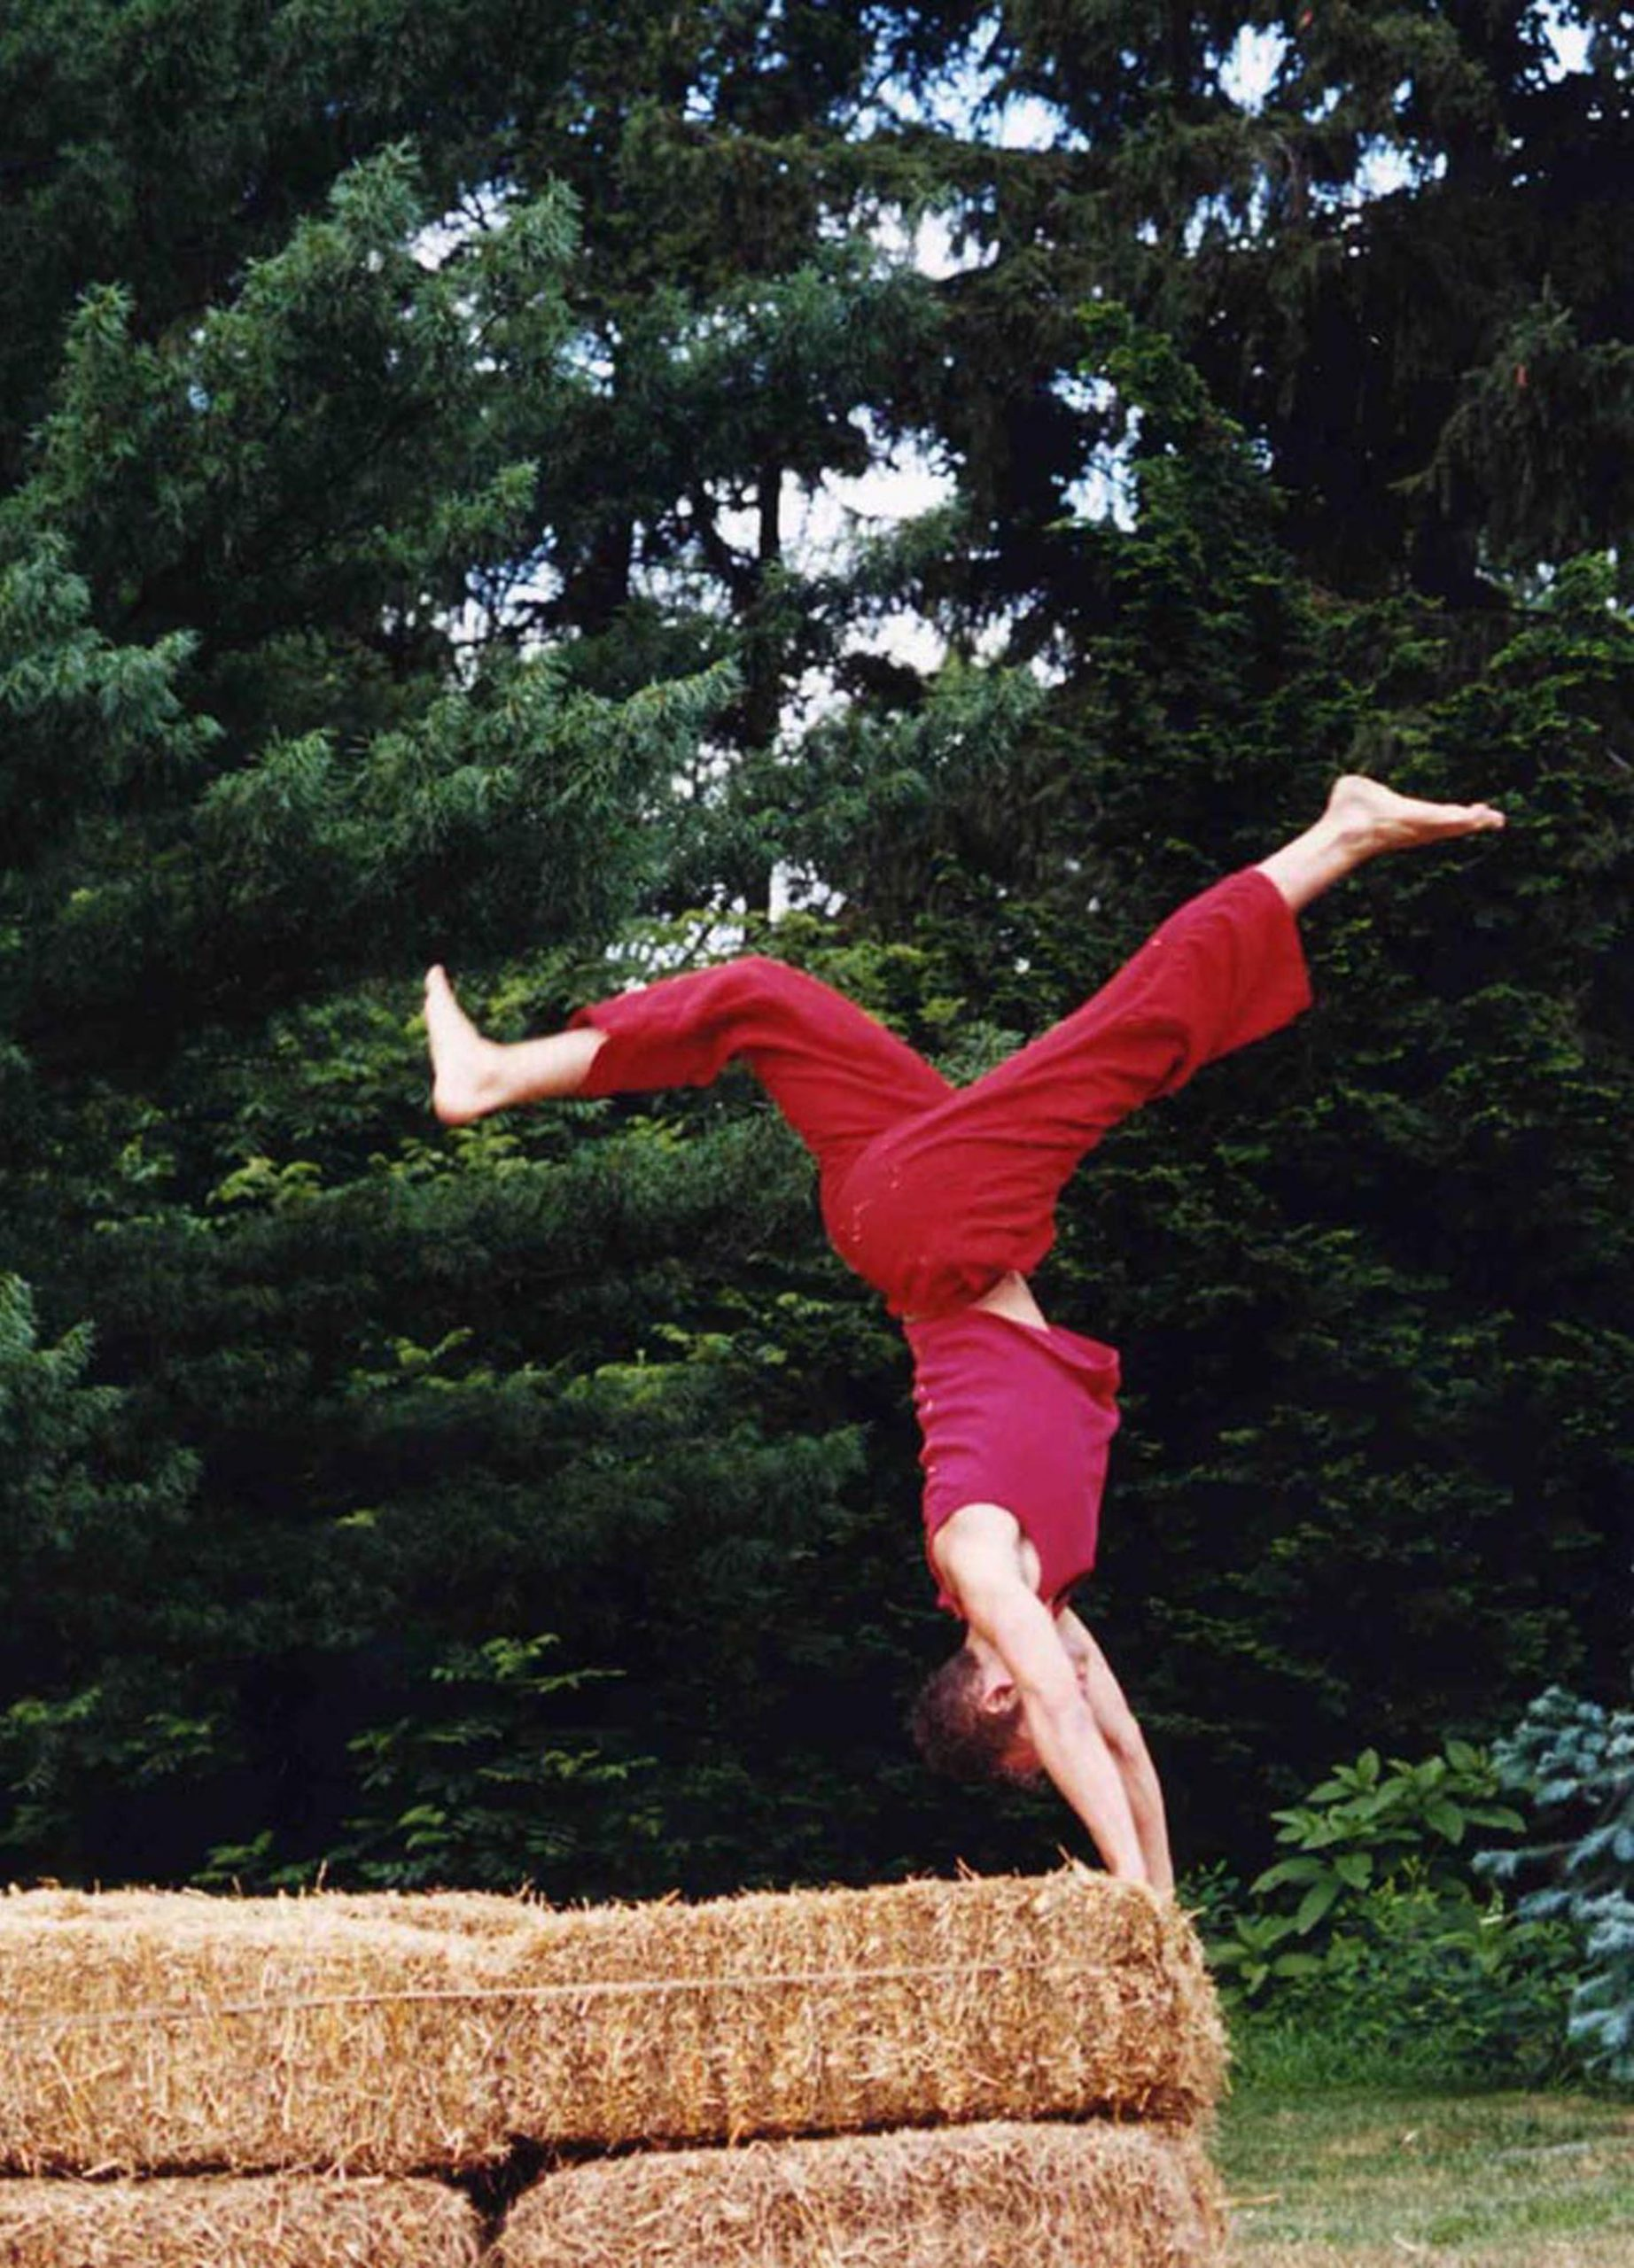 A dancer dressed in flowing red pants and skirt flips over bales of hay, upside down and legs spread.